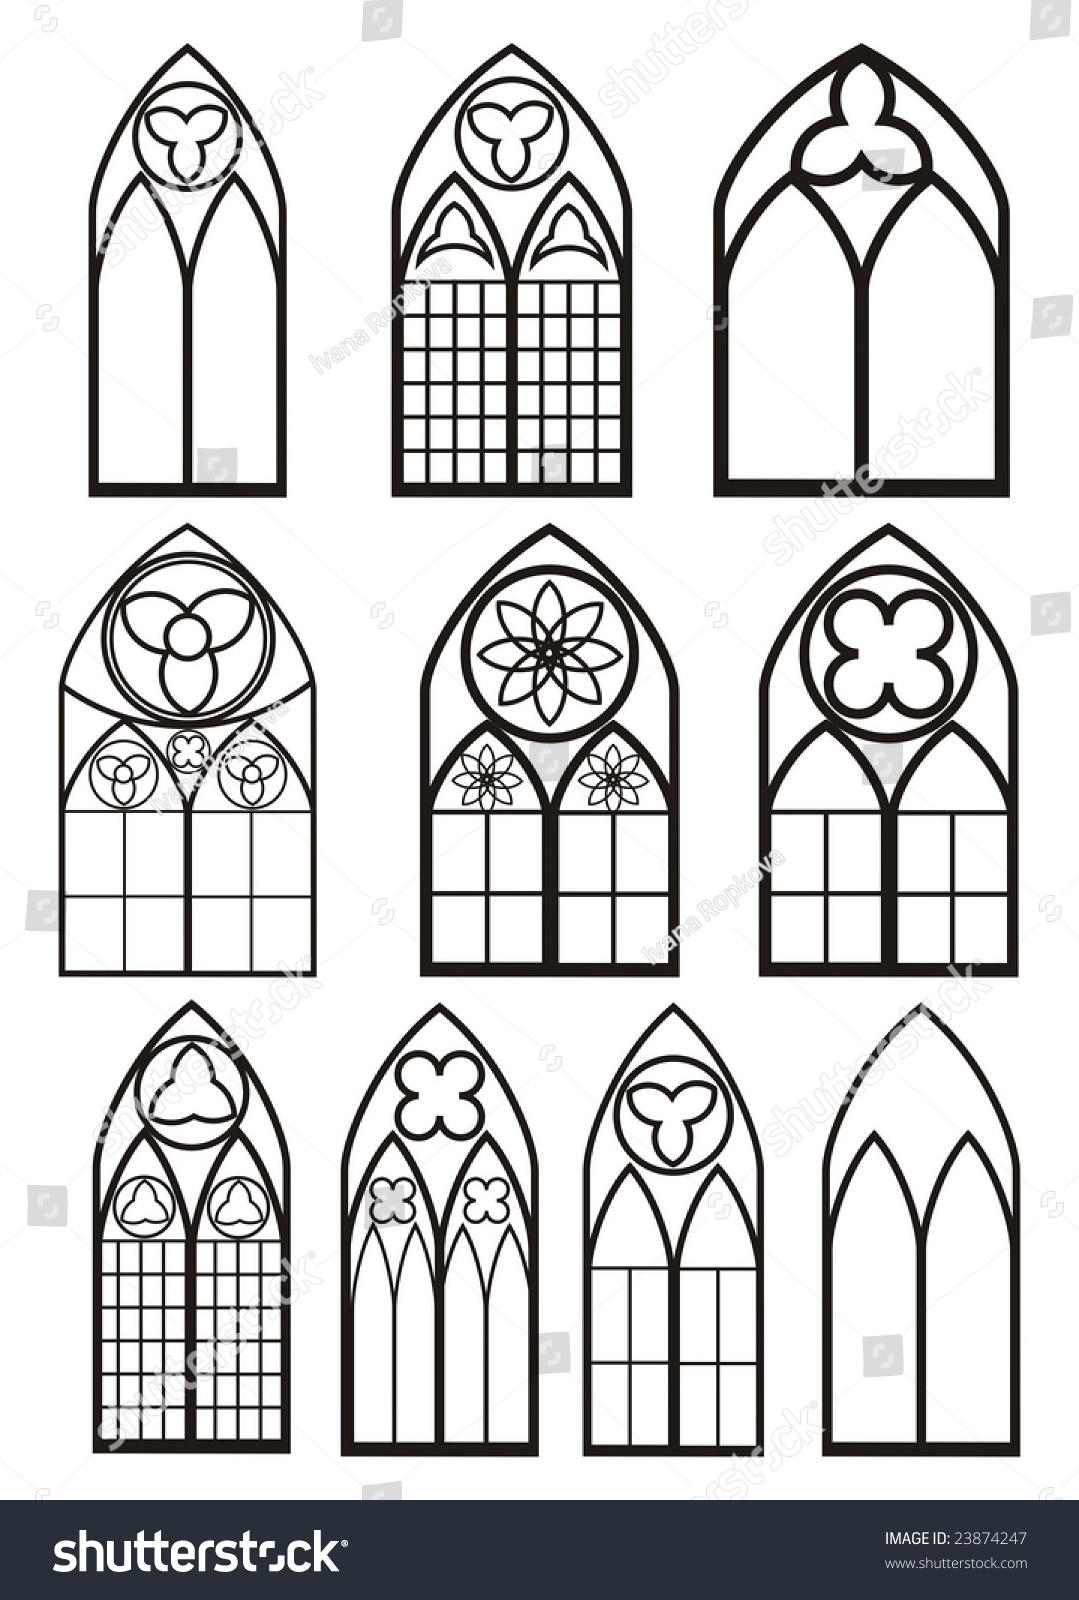 Windows In Gothic Style 23874247